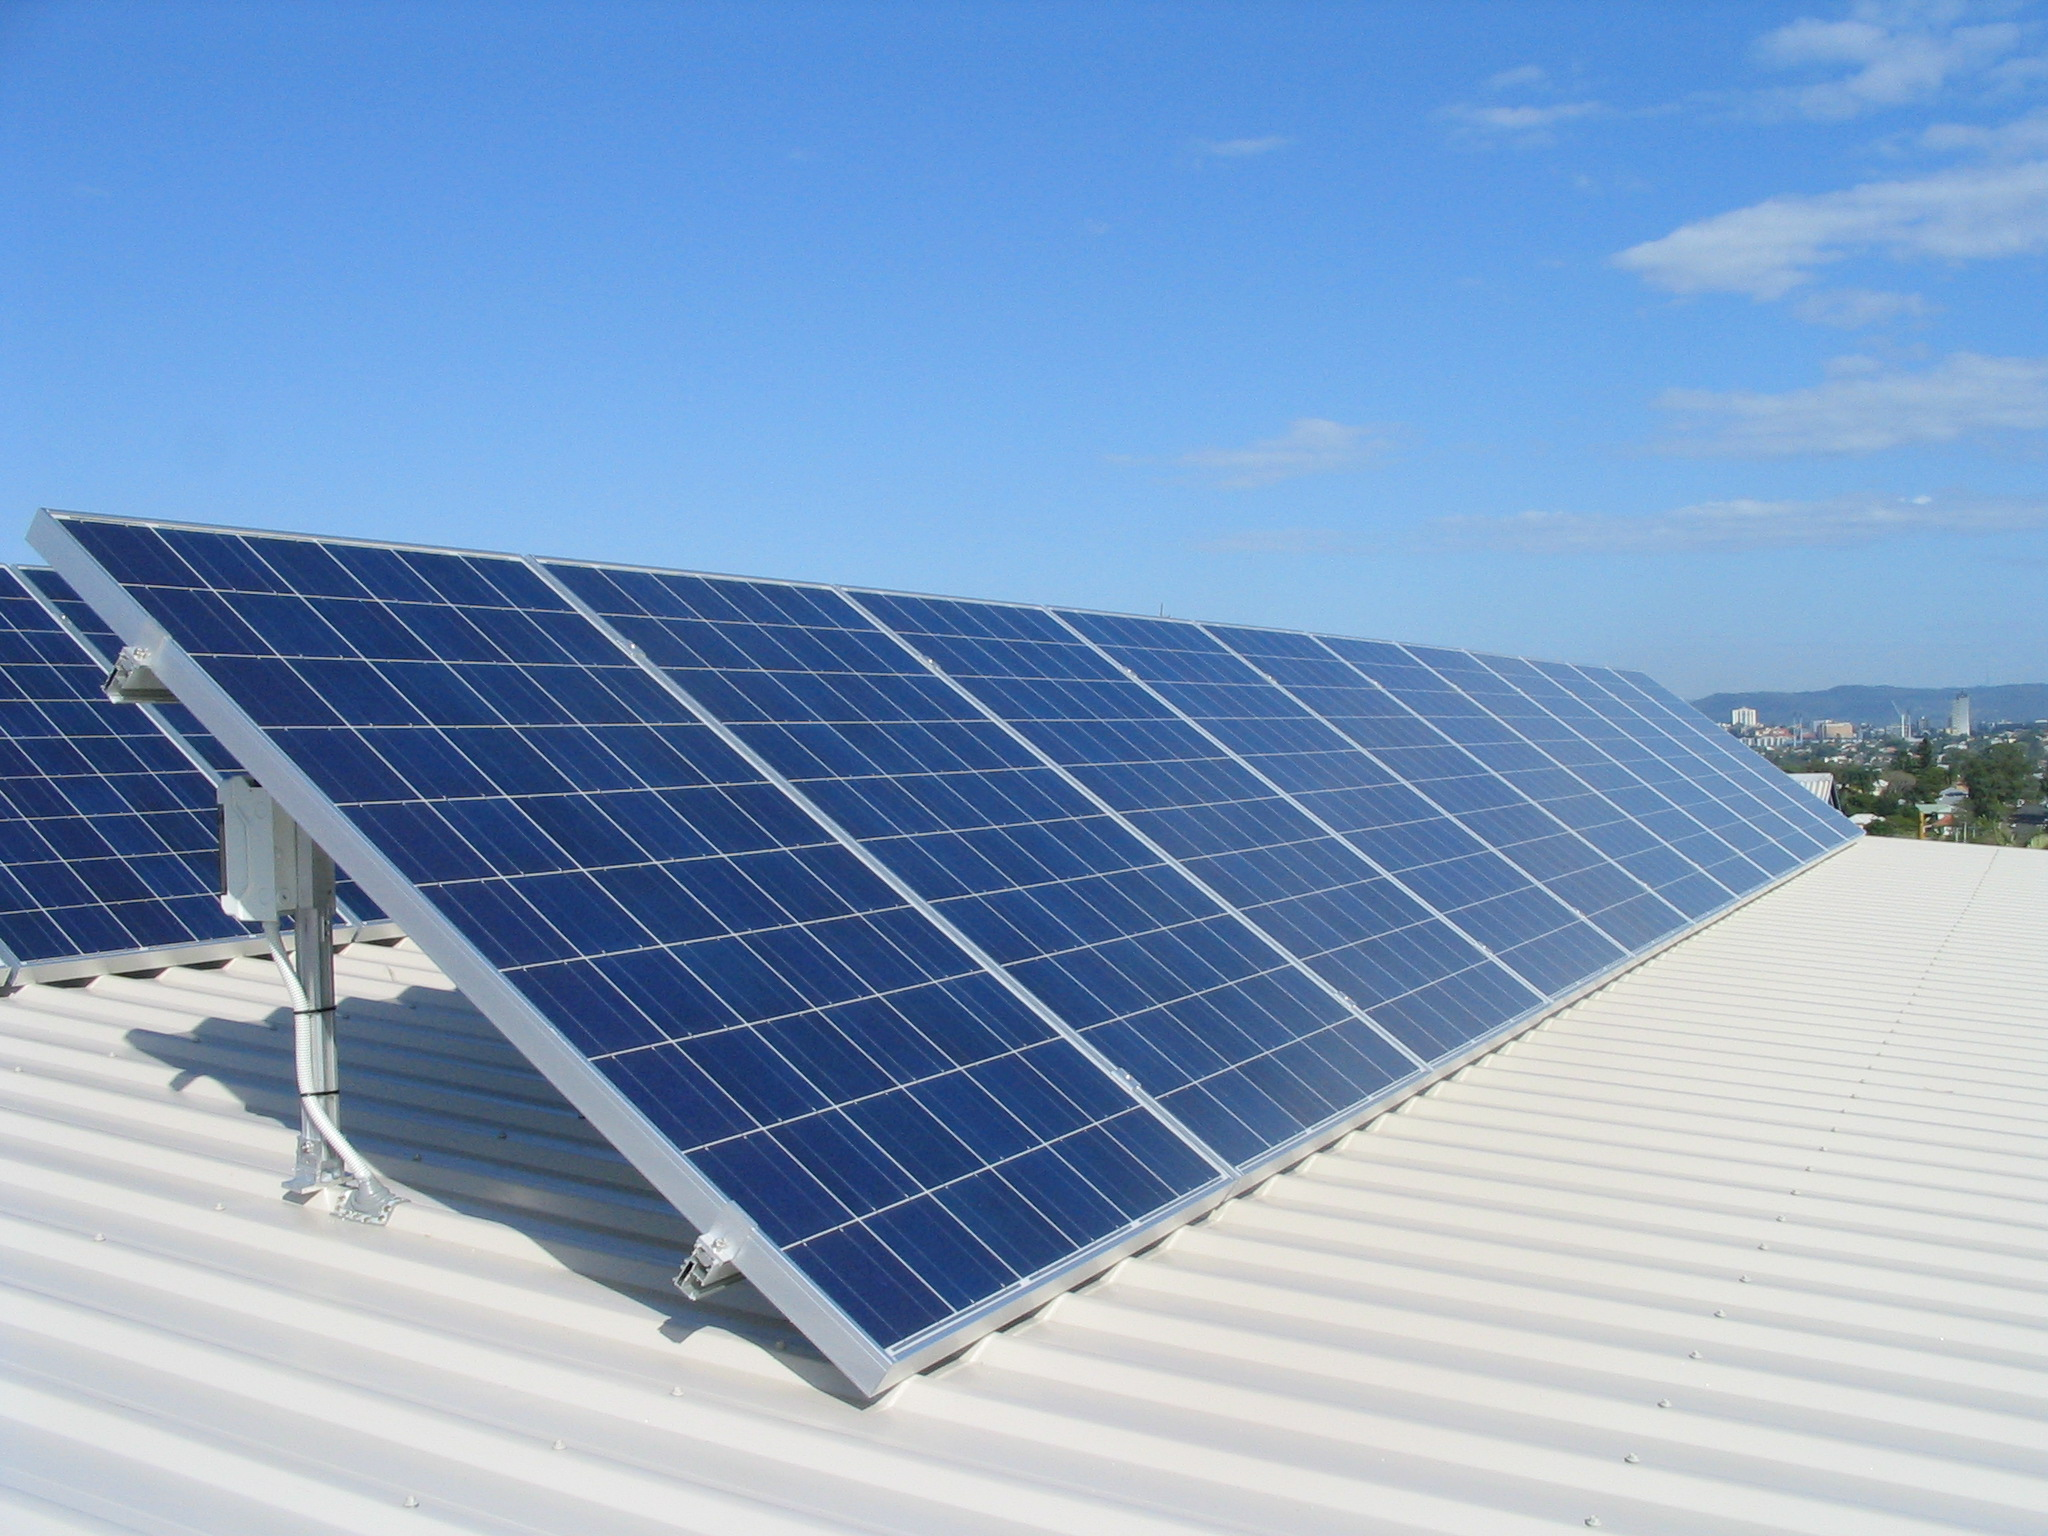 Solar Panel Installation Examples From Excluss